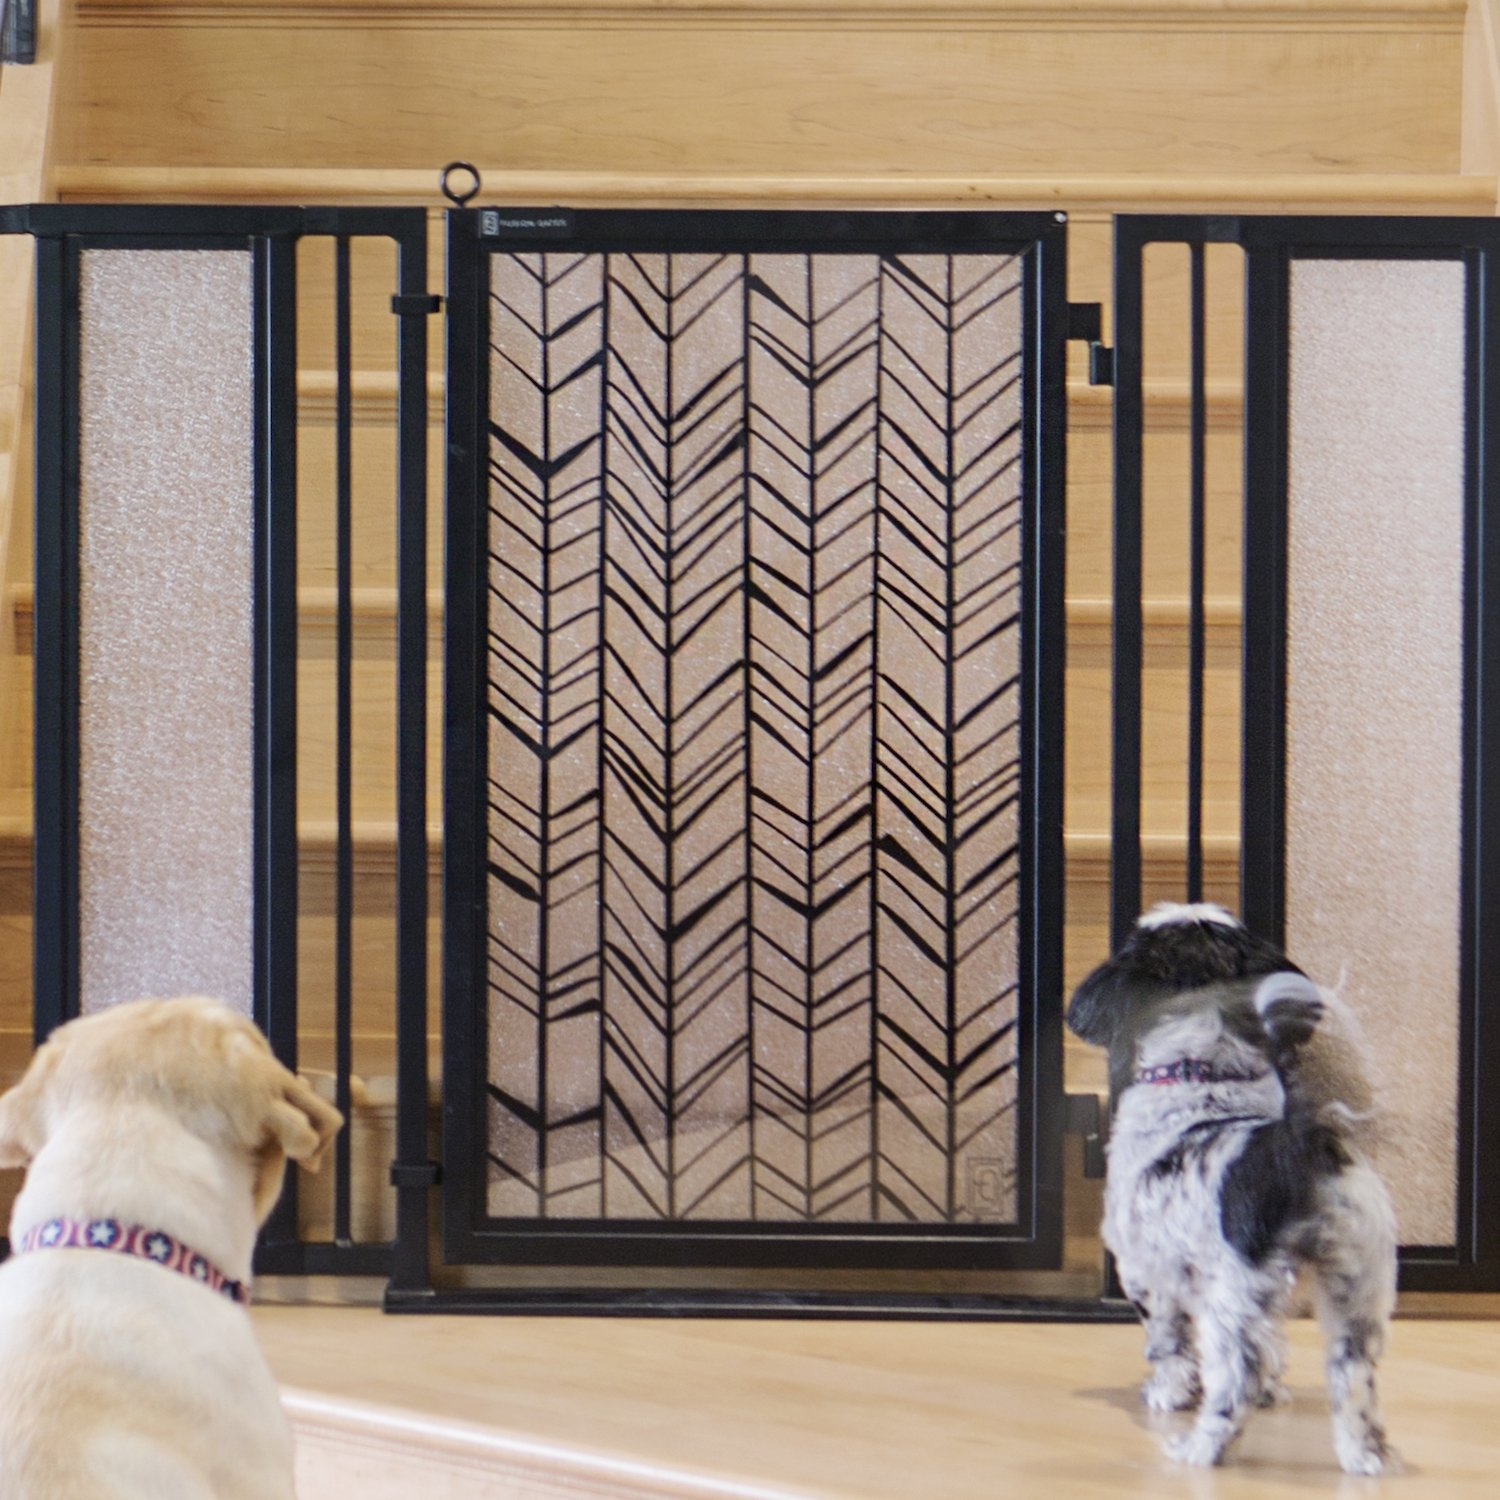 Baby & Pet Gate featuring the Chevron Trail Design from Fusion Gates (Black, 52'' - 60'')